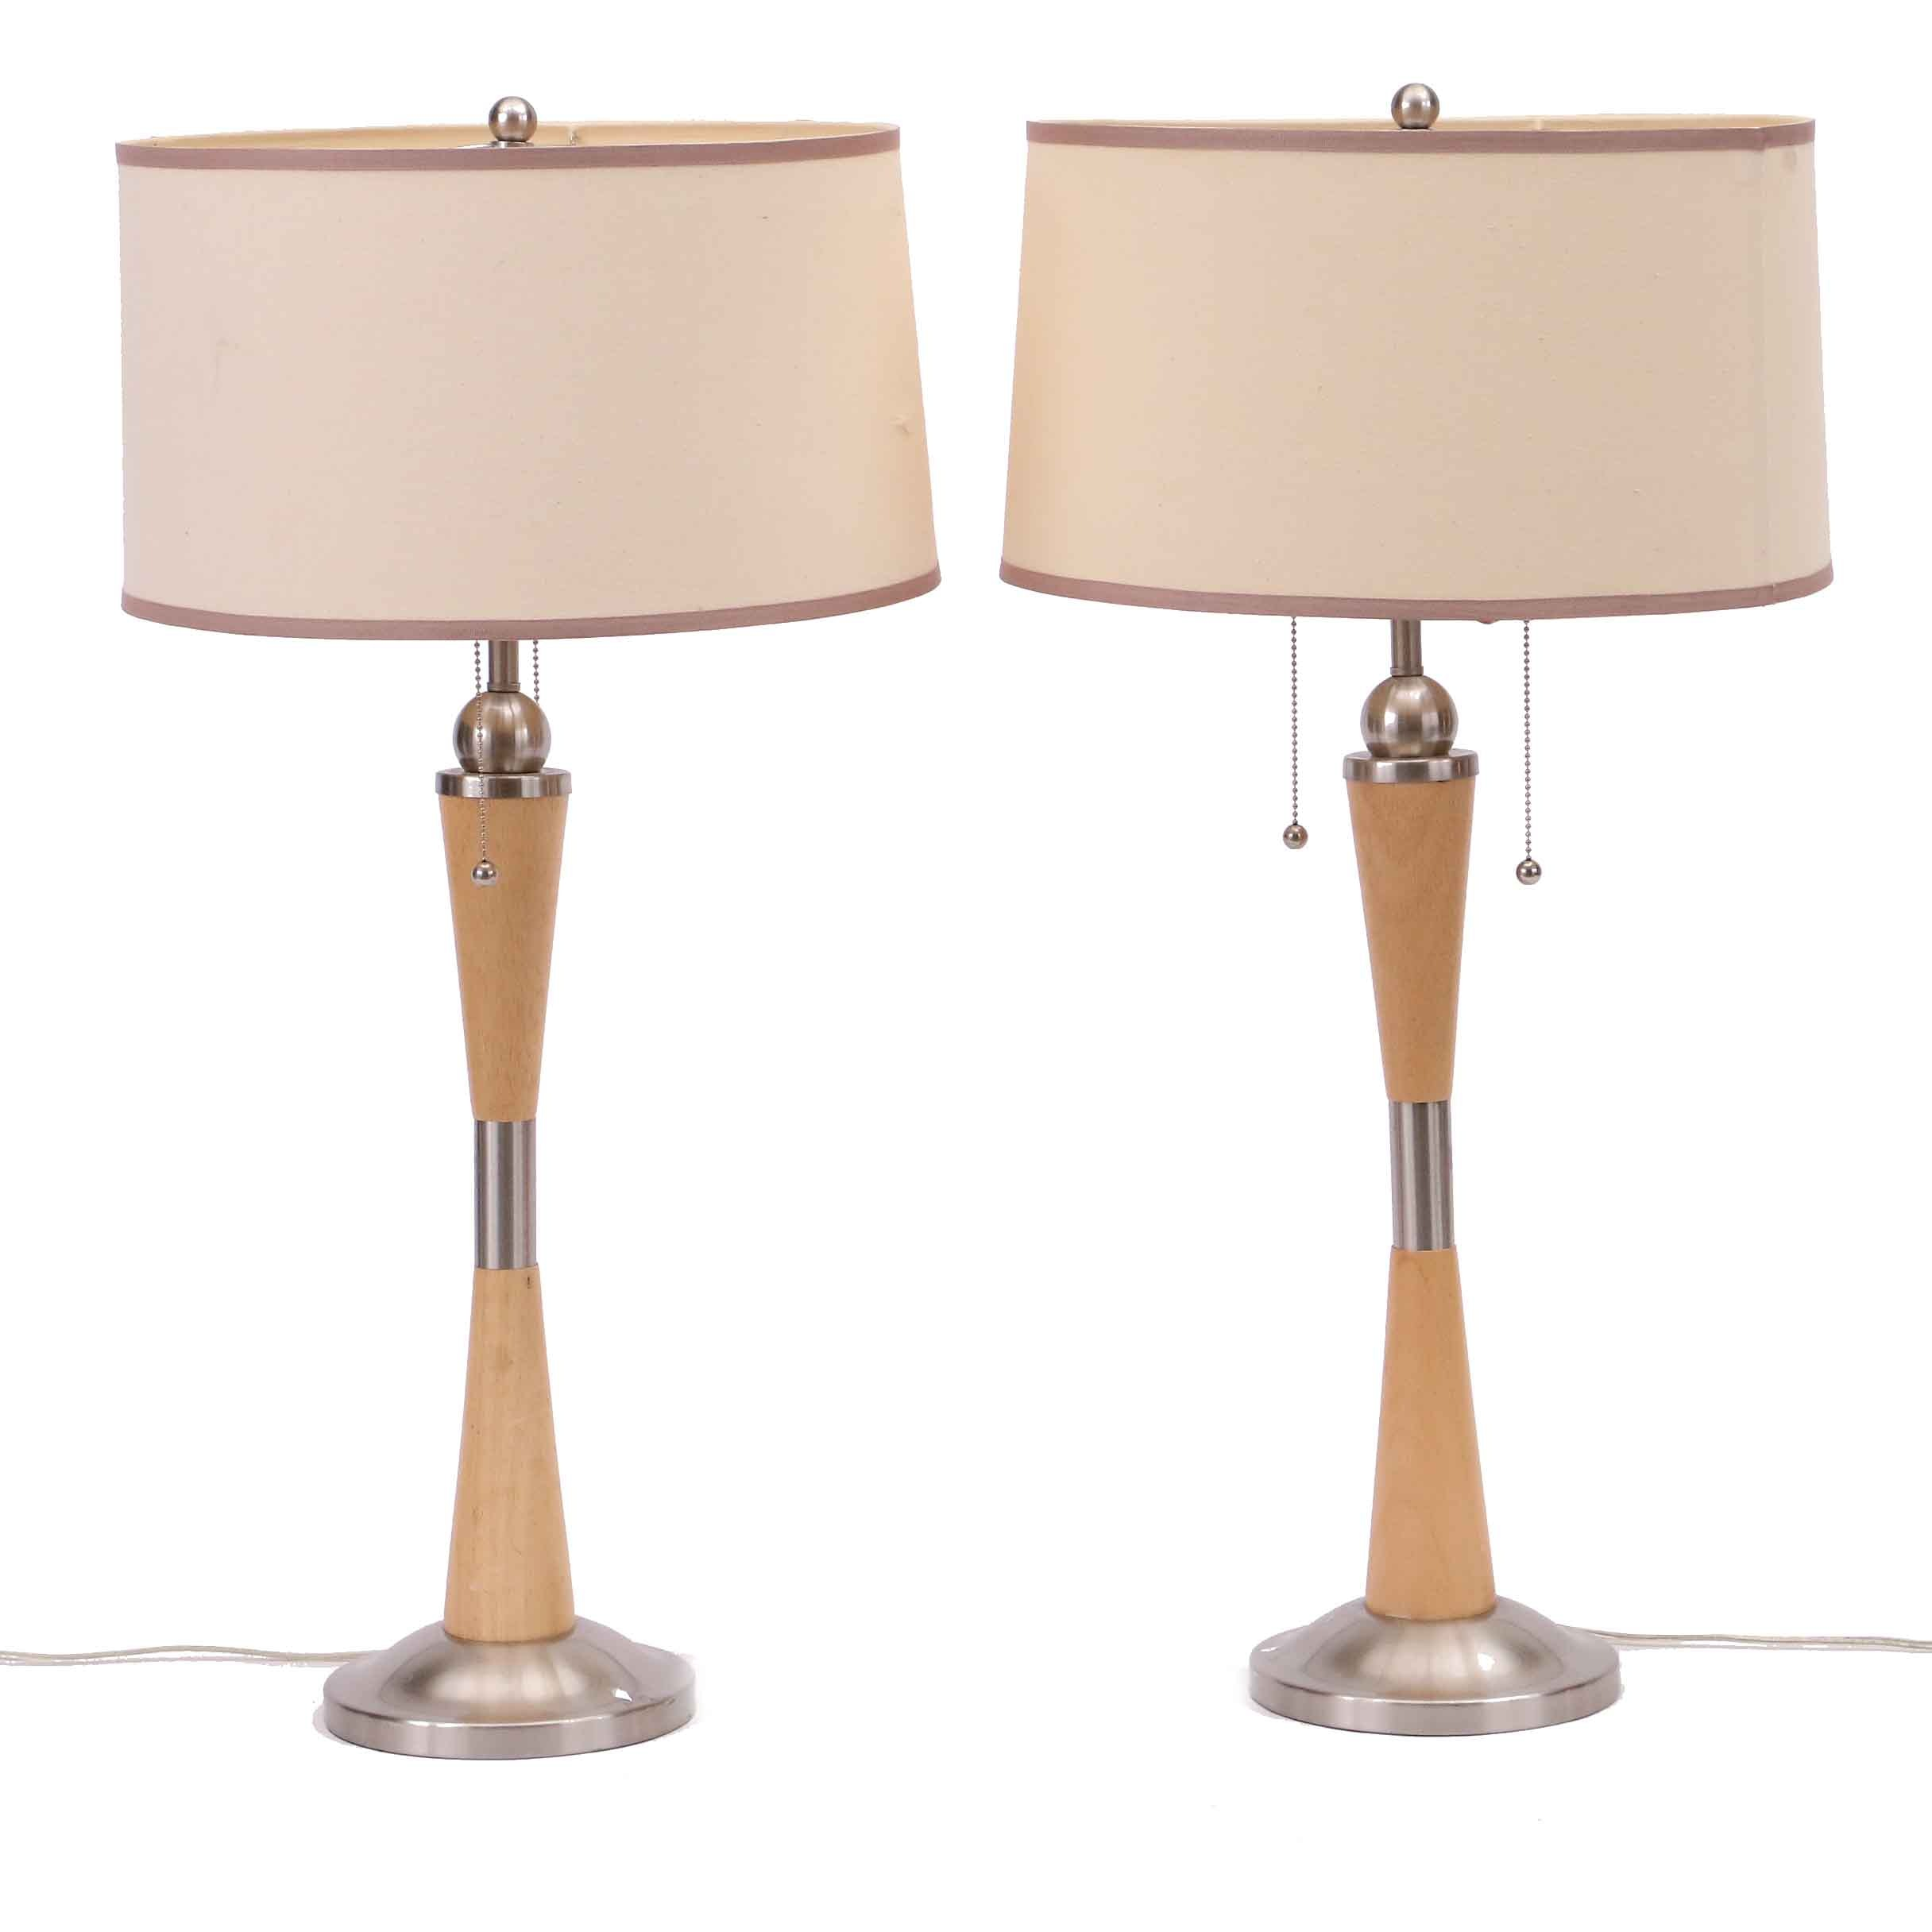 Mid Century Modern Style Wood and Brushed Nickel Lamps